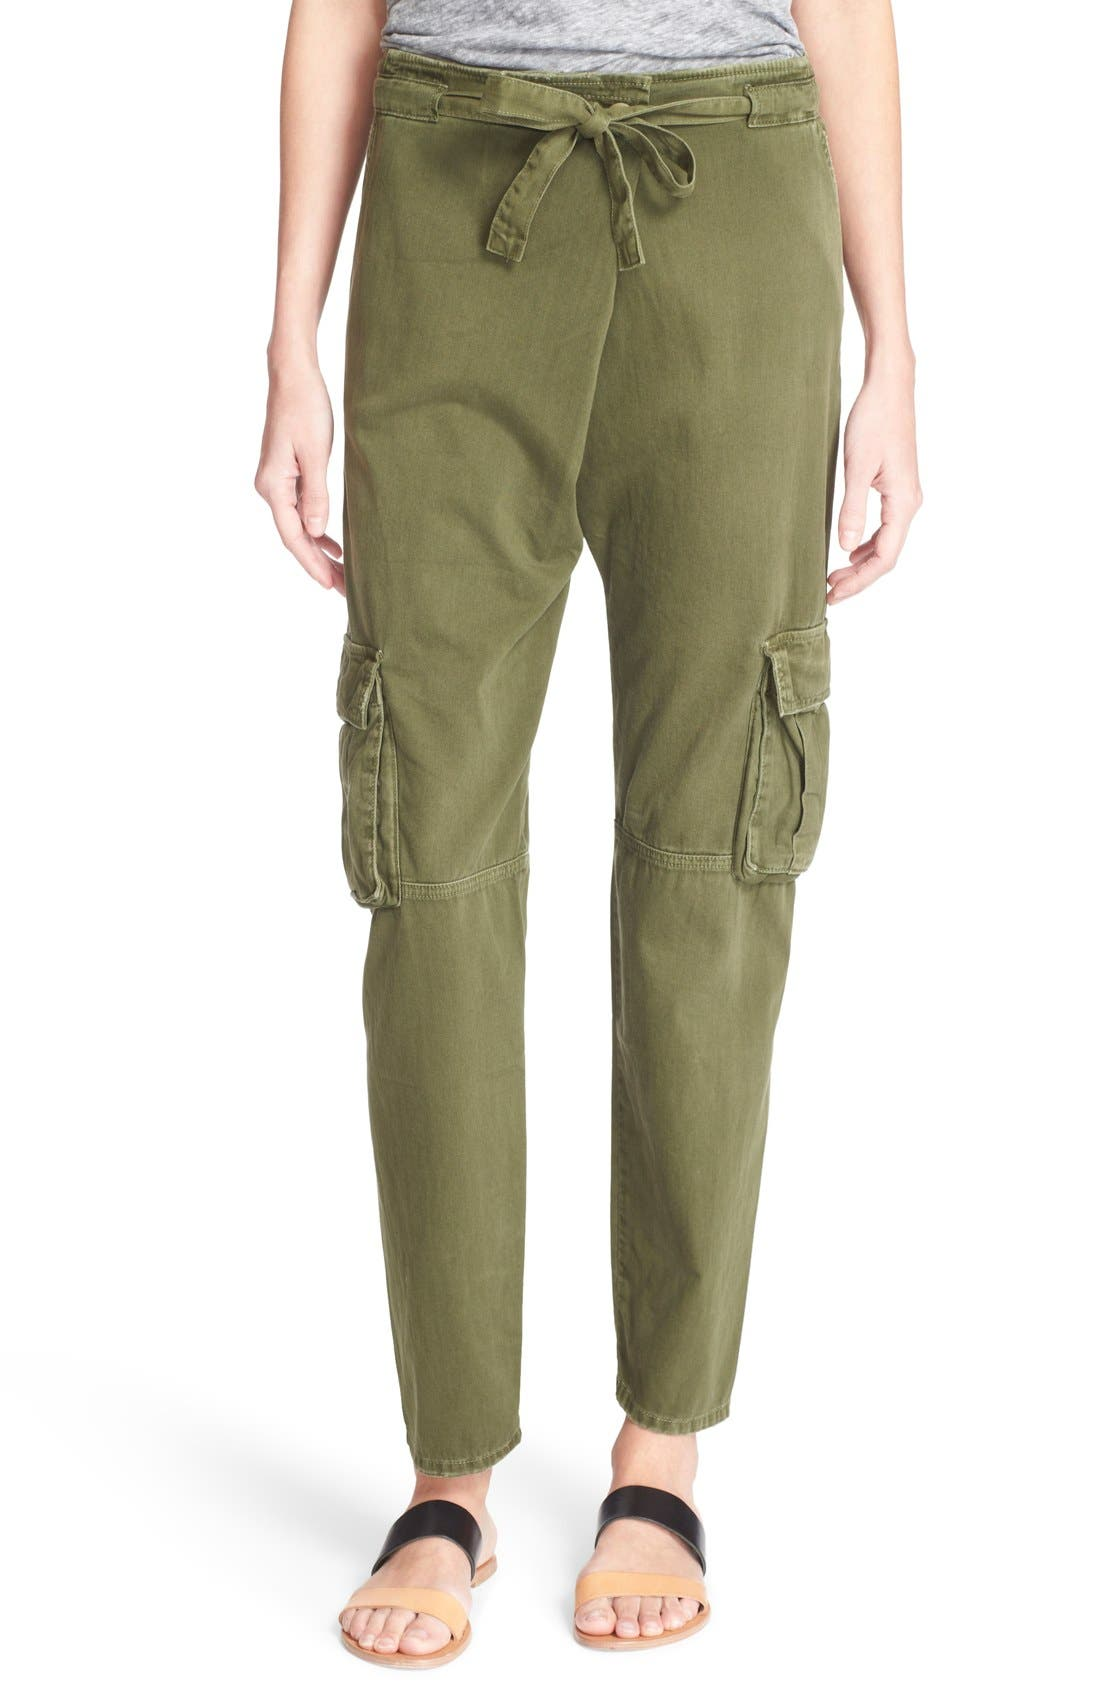 Alternate Image 1 Selected - Current/Elliott 'The Buddy' Cotton Twill Trousers